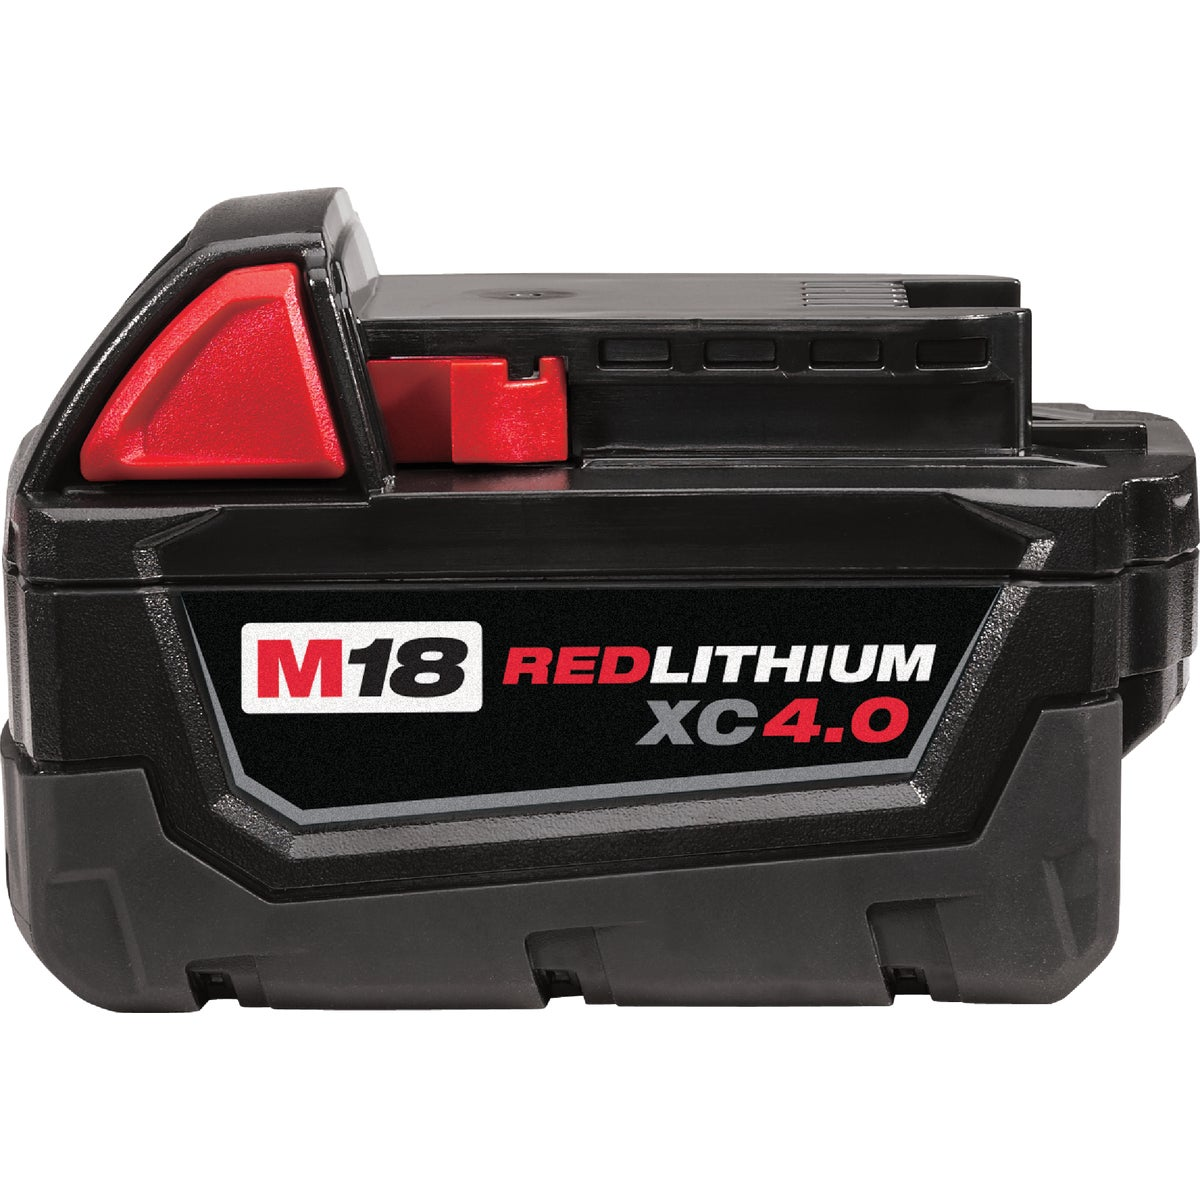 M18 4.0 AH BATTERY PACK - 48-11-1840 by Milwaukee Elec Tool